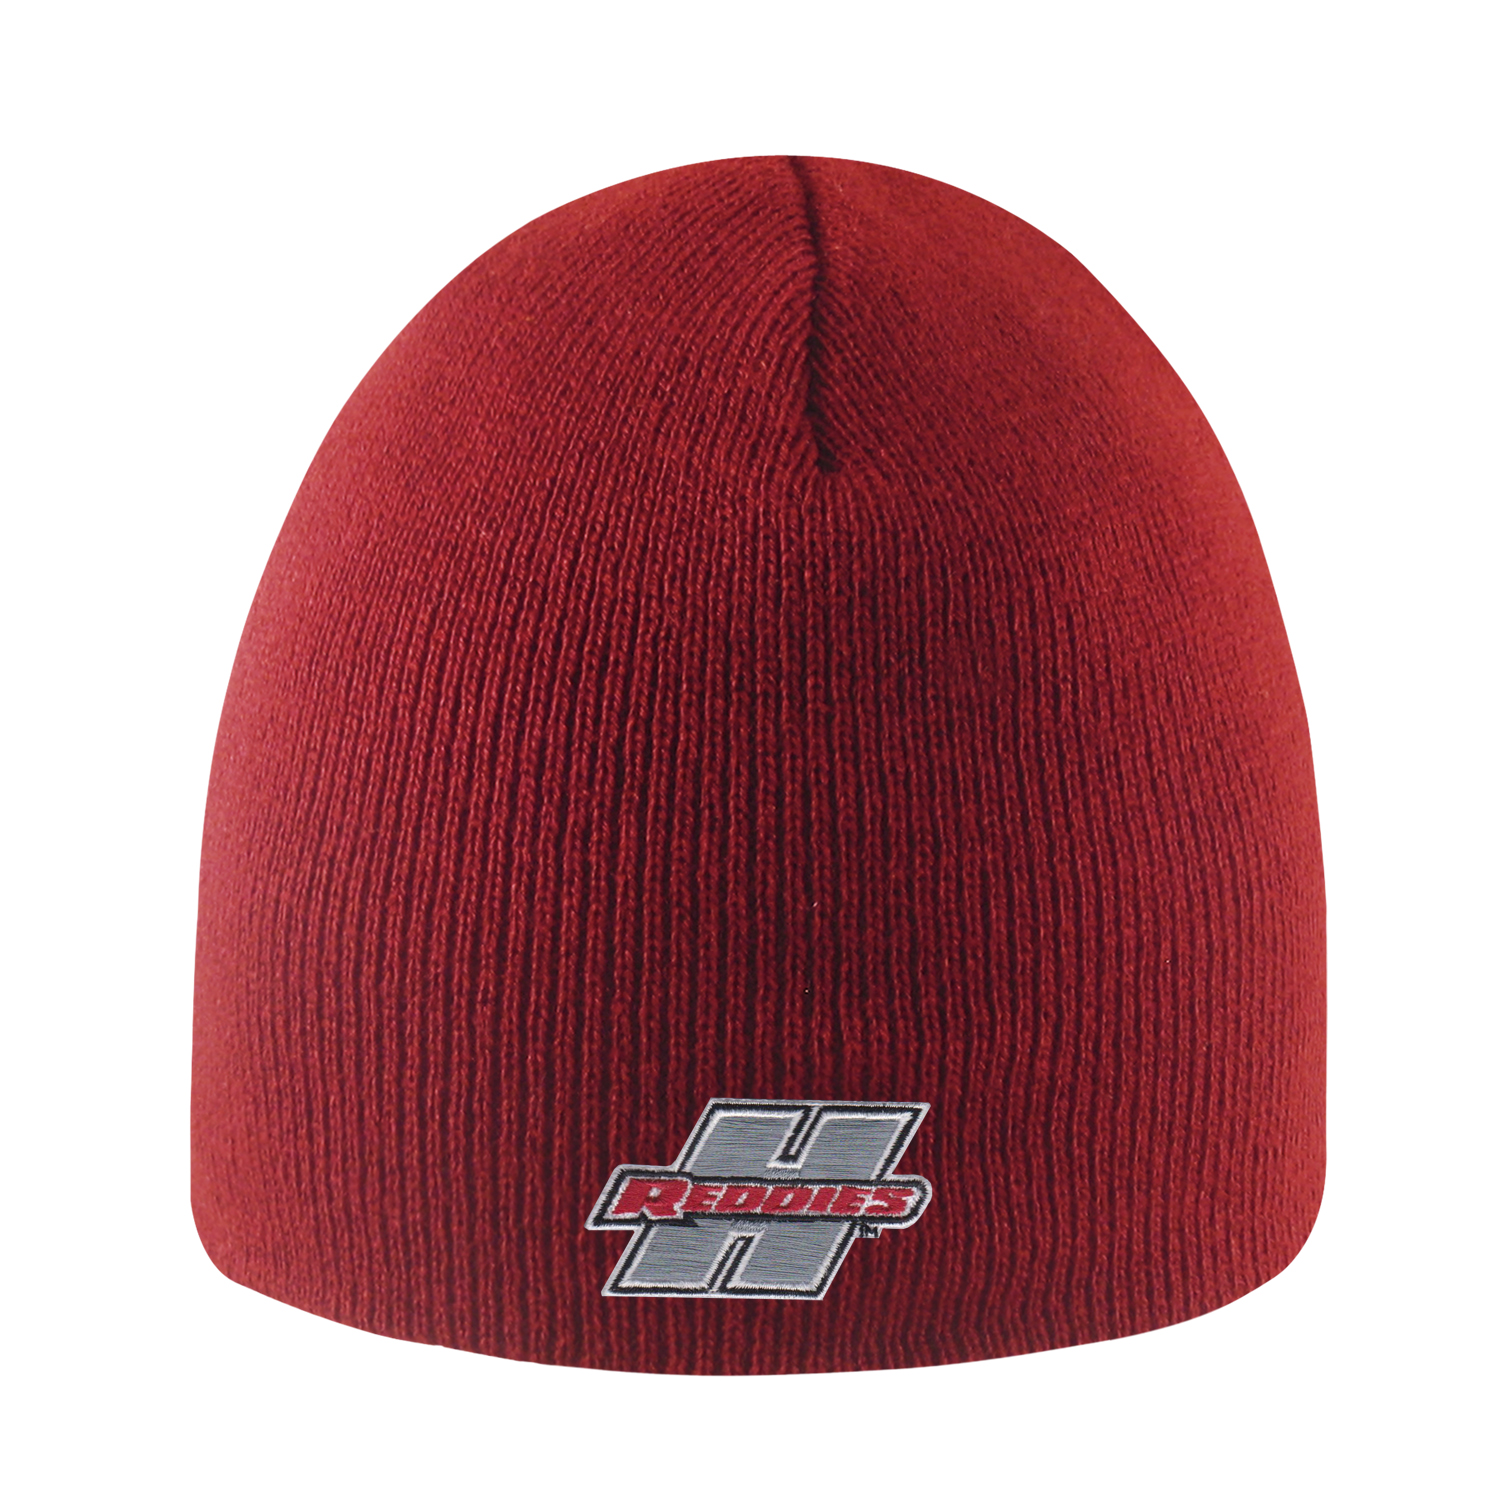 Henderson Reddies Everest Knit Beanie